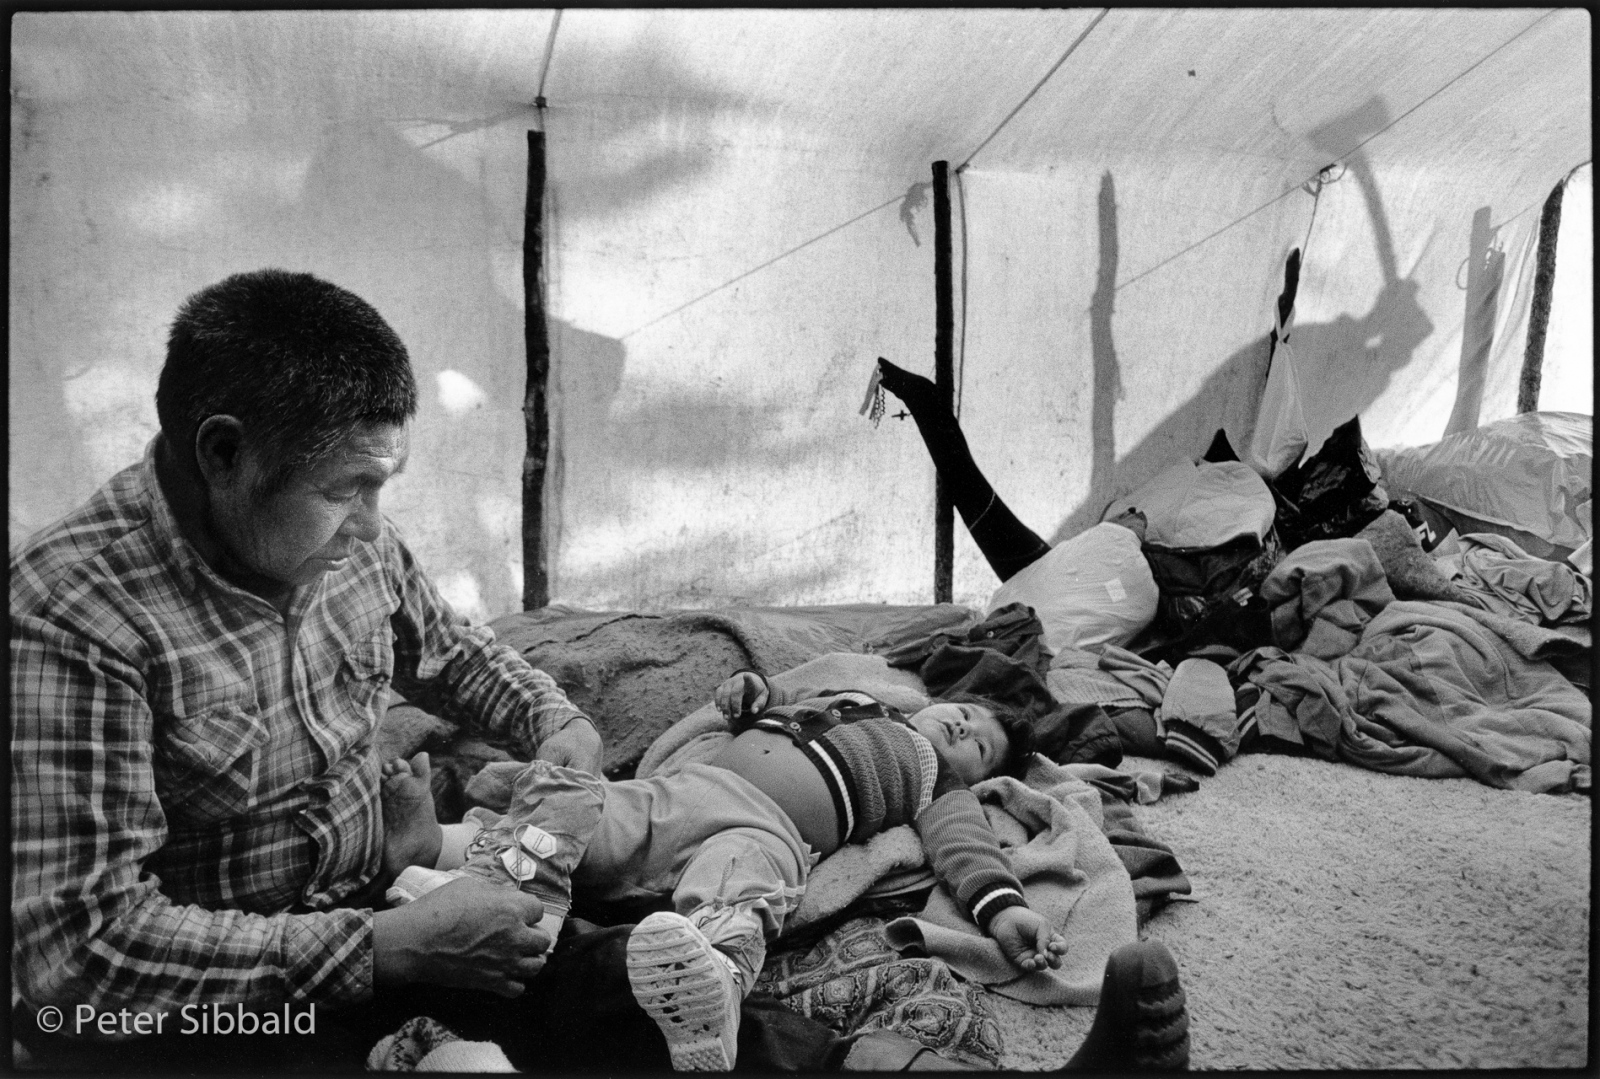 Penashue Camp, Mealy Mountains, Nitassinan/Labrador. Innu elder, Matthew Penashue dresses his adopted grandson during his morning routine in the country. Copyright Peter Sibbald, 1989.